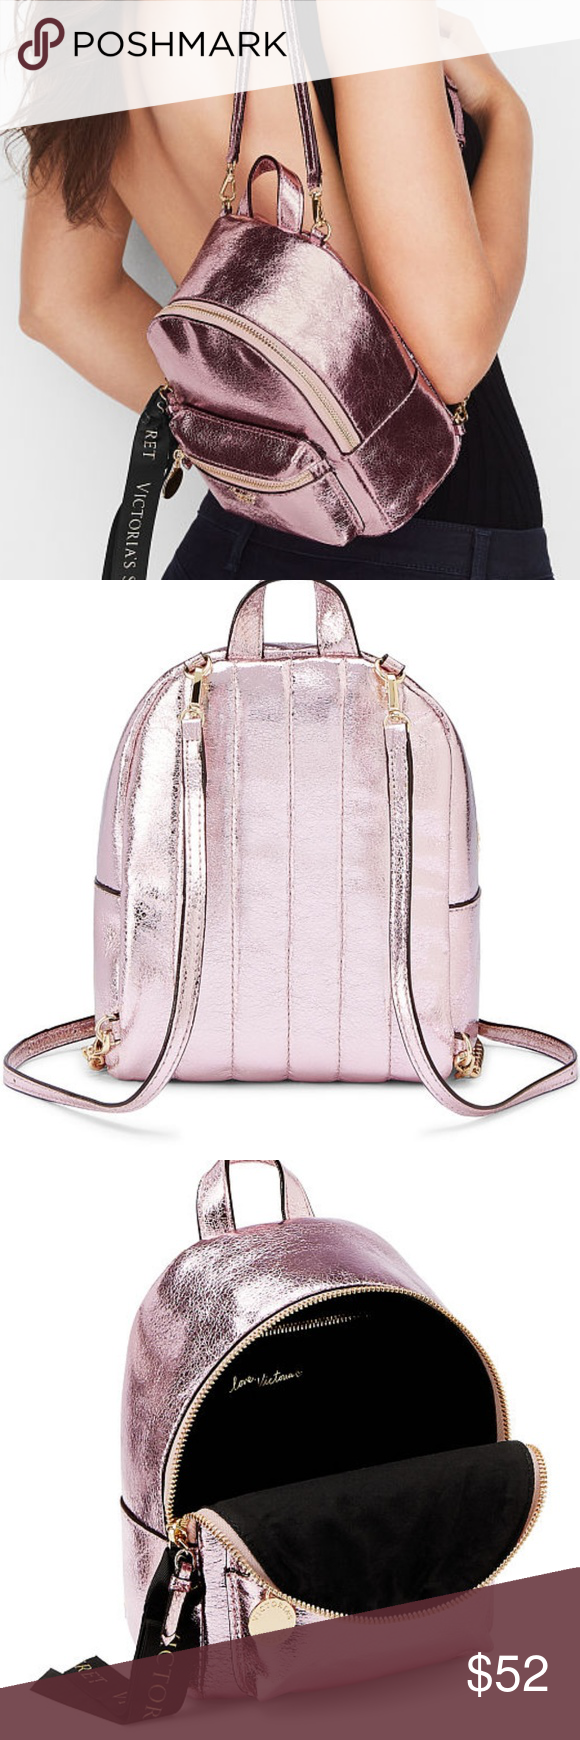 01748874b1 VS Pink Crackle Mini Backpack Purse Victorias Secret Runway Pink Crackle  Mini Backpack Purse SOLD OUT - Gorgeous - Pink Gold Black NWT - In Original  VS ...